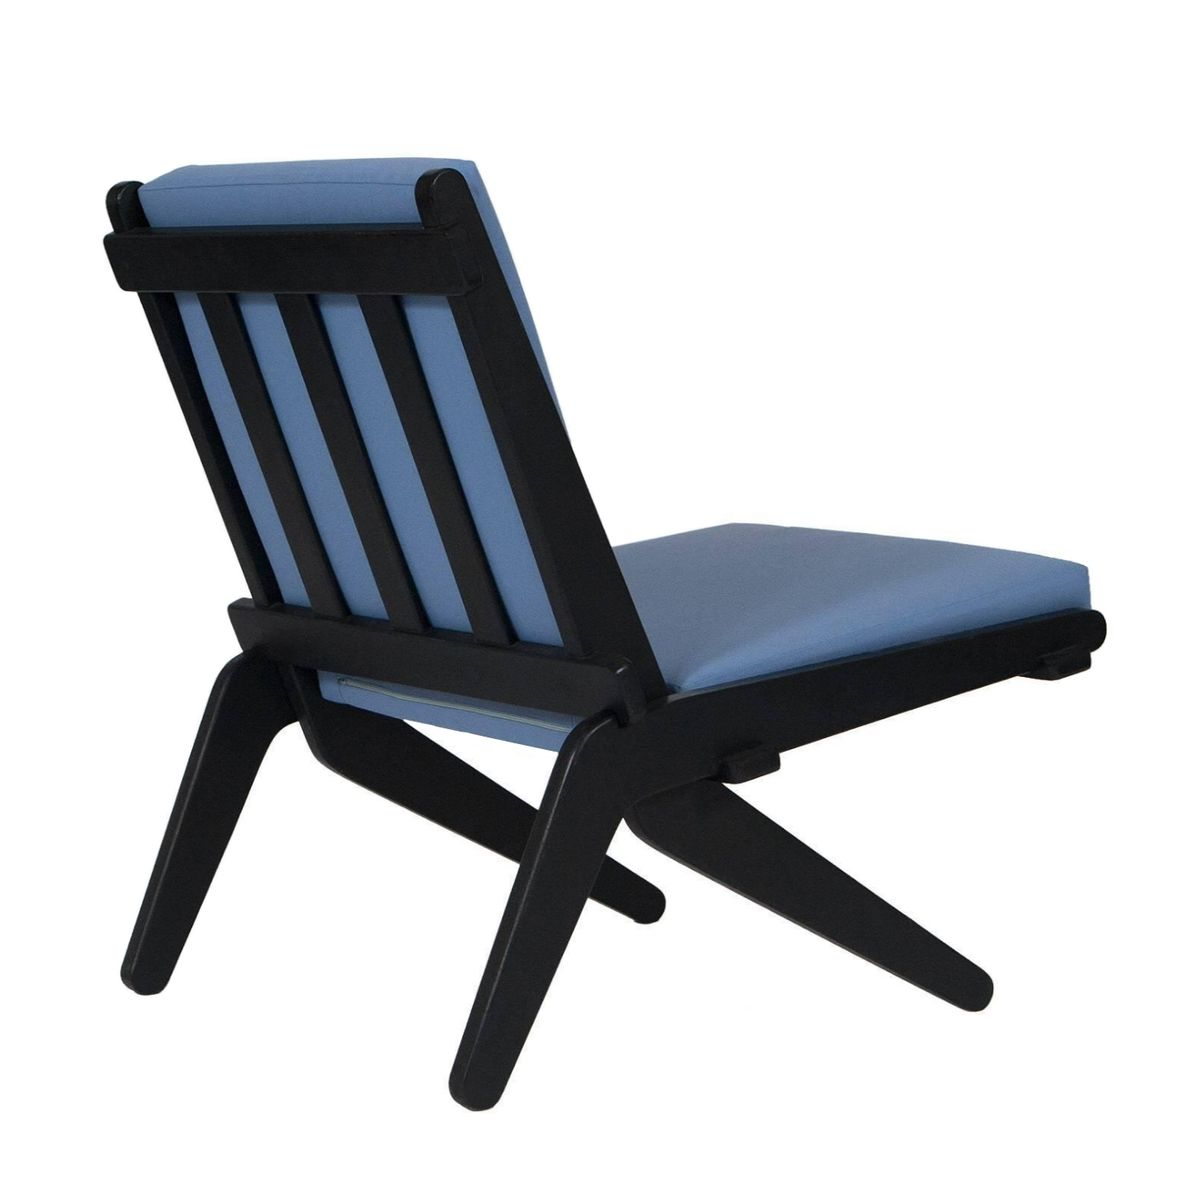 folding z chair vintage rocking chairs danish lounge 1950 for sale at pamono